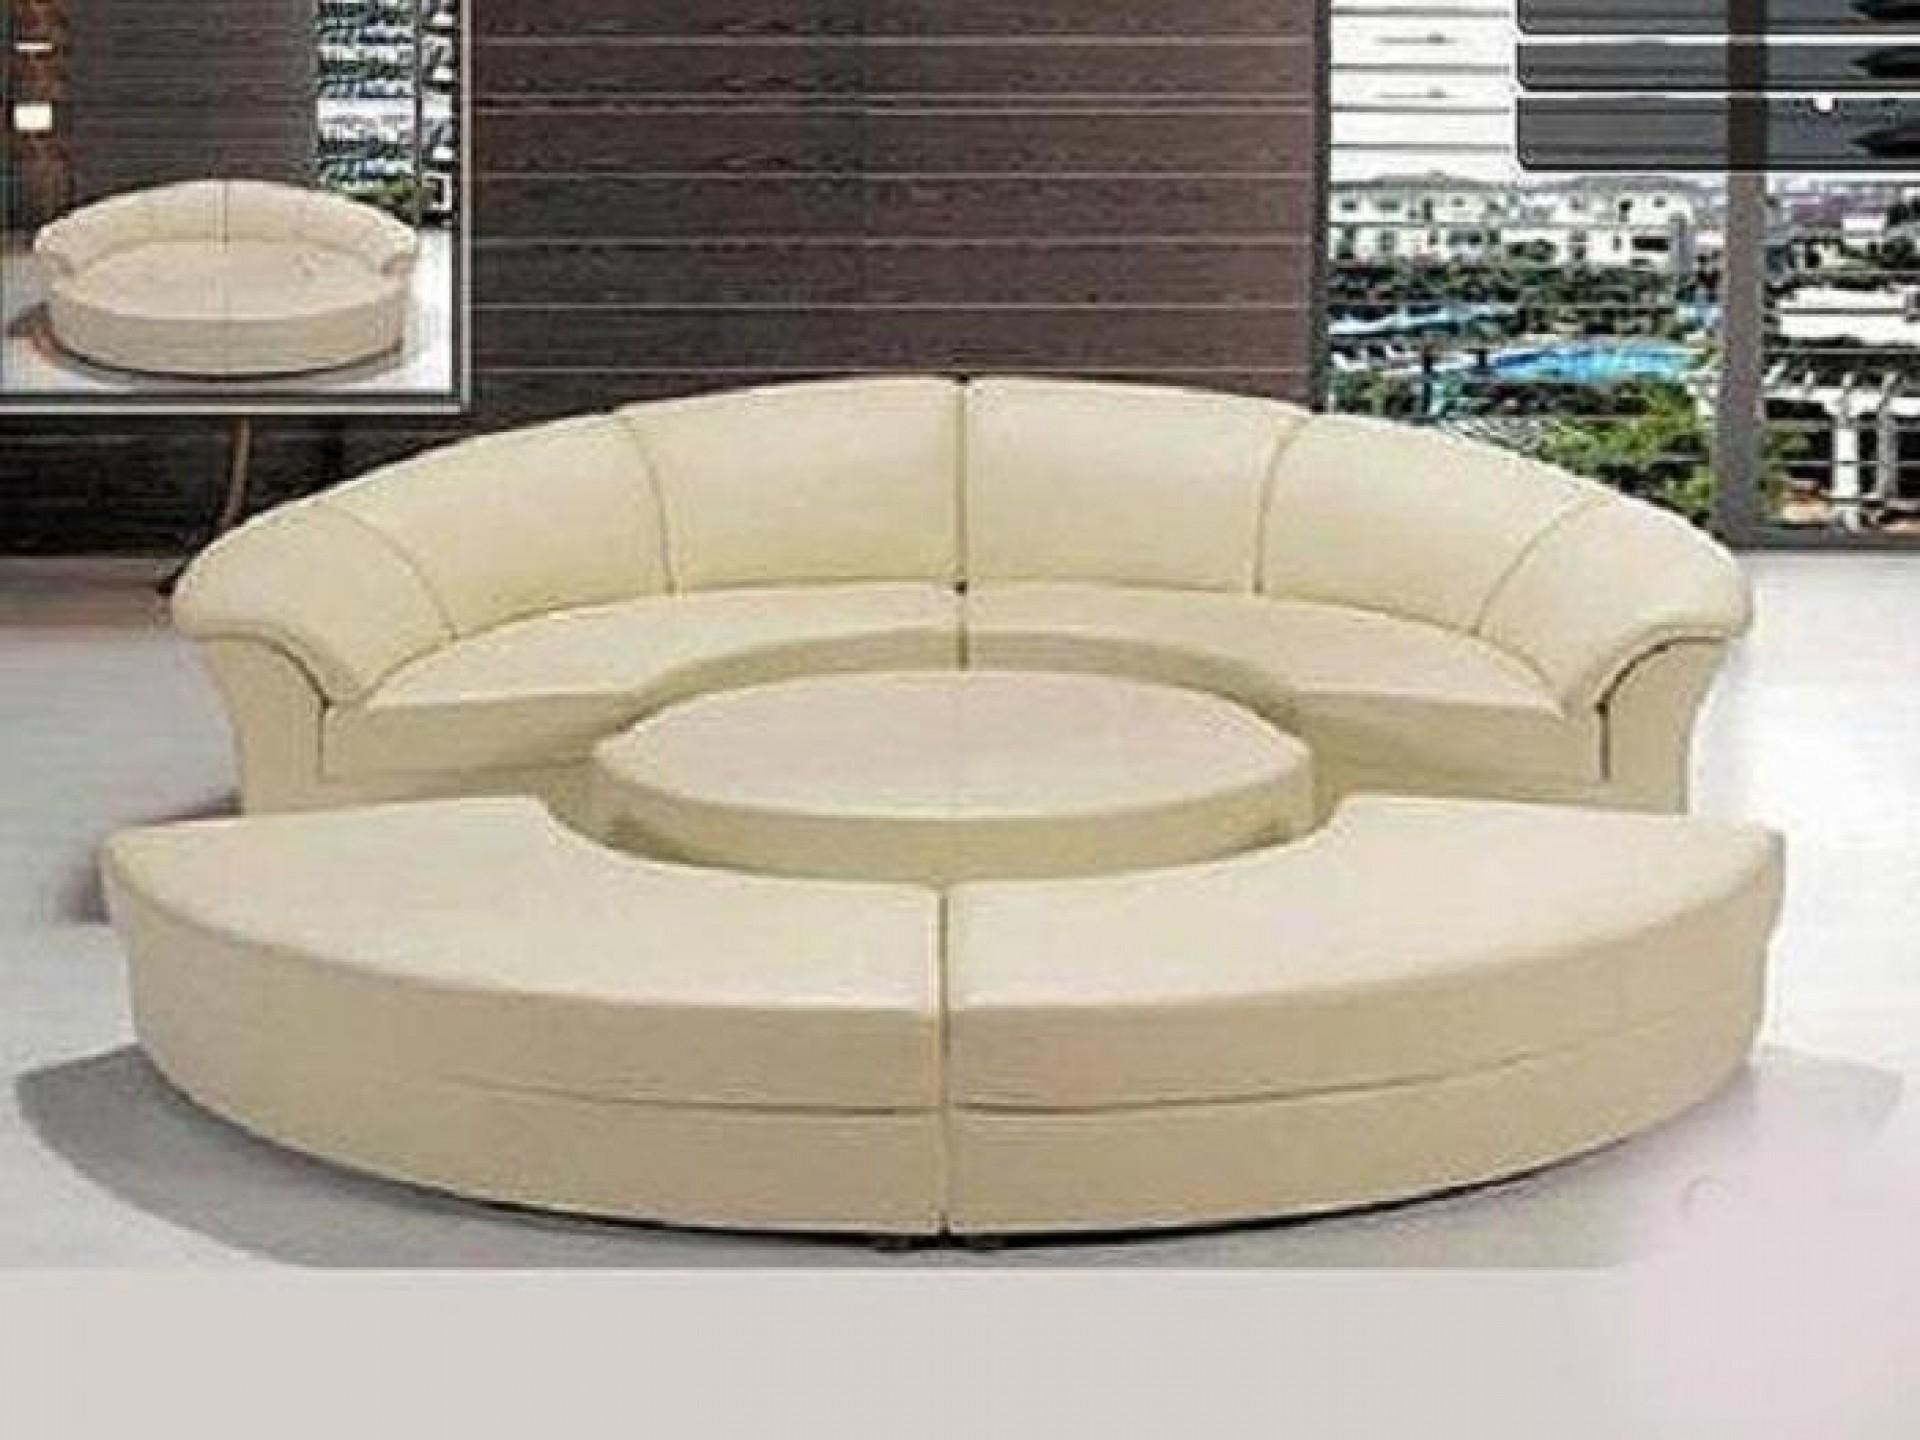 Sofa Round Sectional Bed | Tamingthesat Within Round Sofas (View 8 of 20)